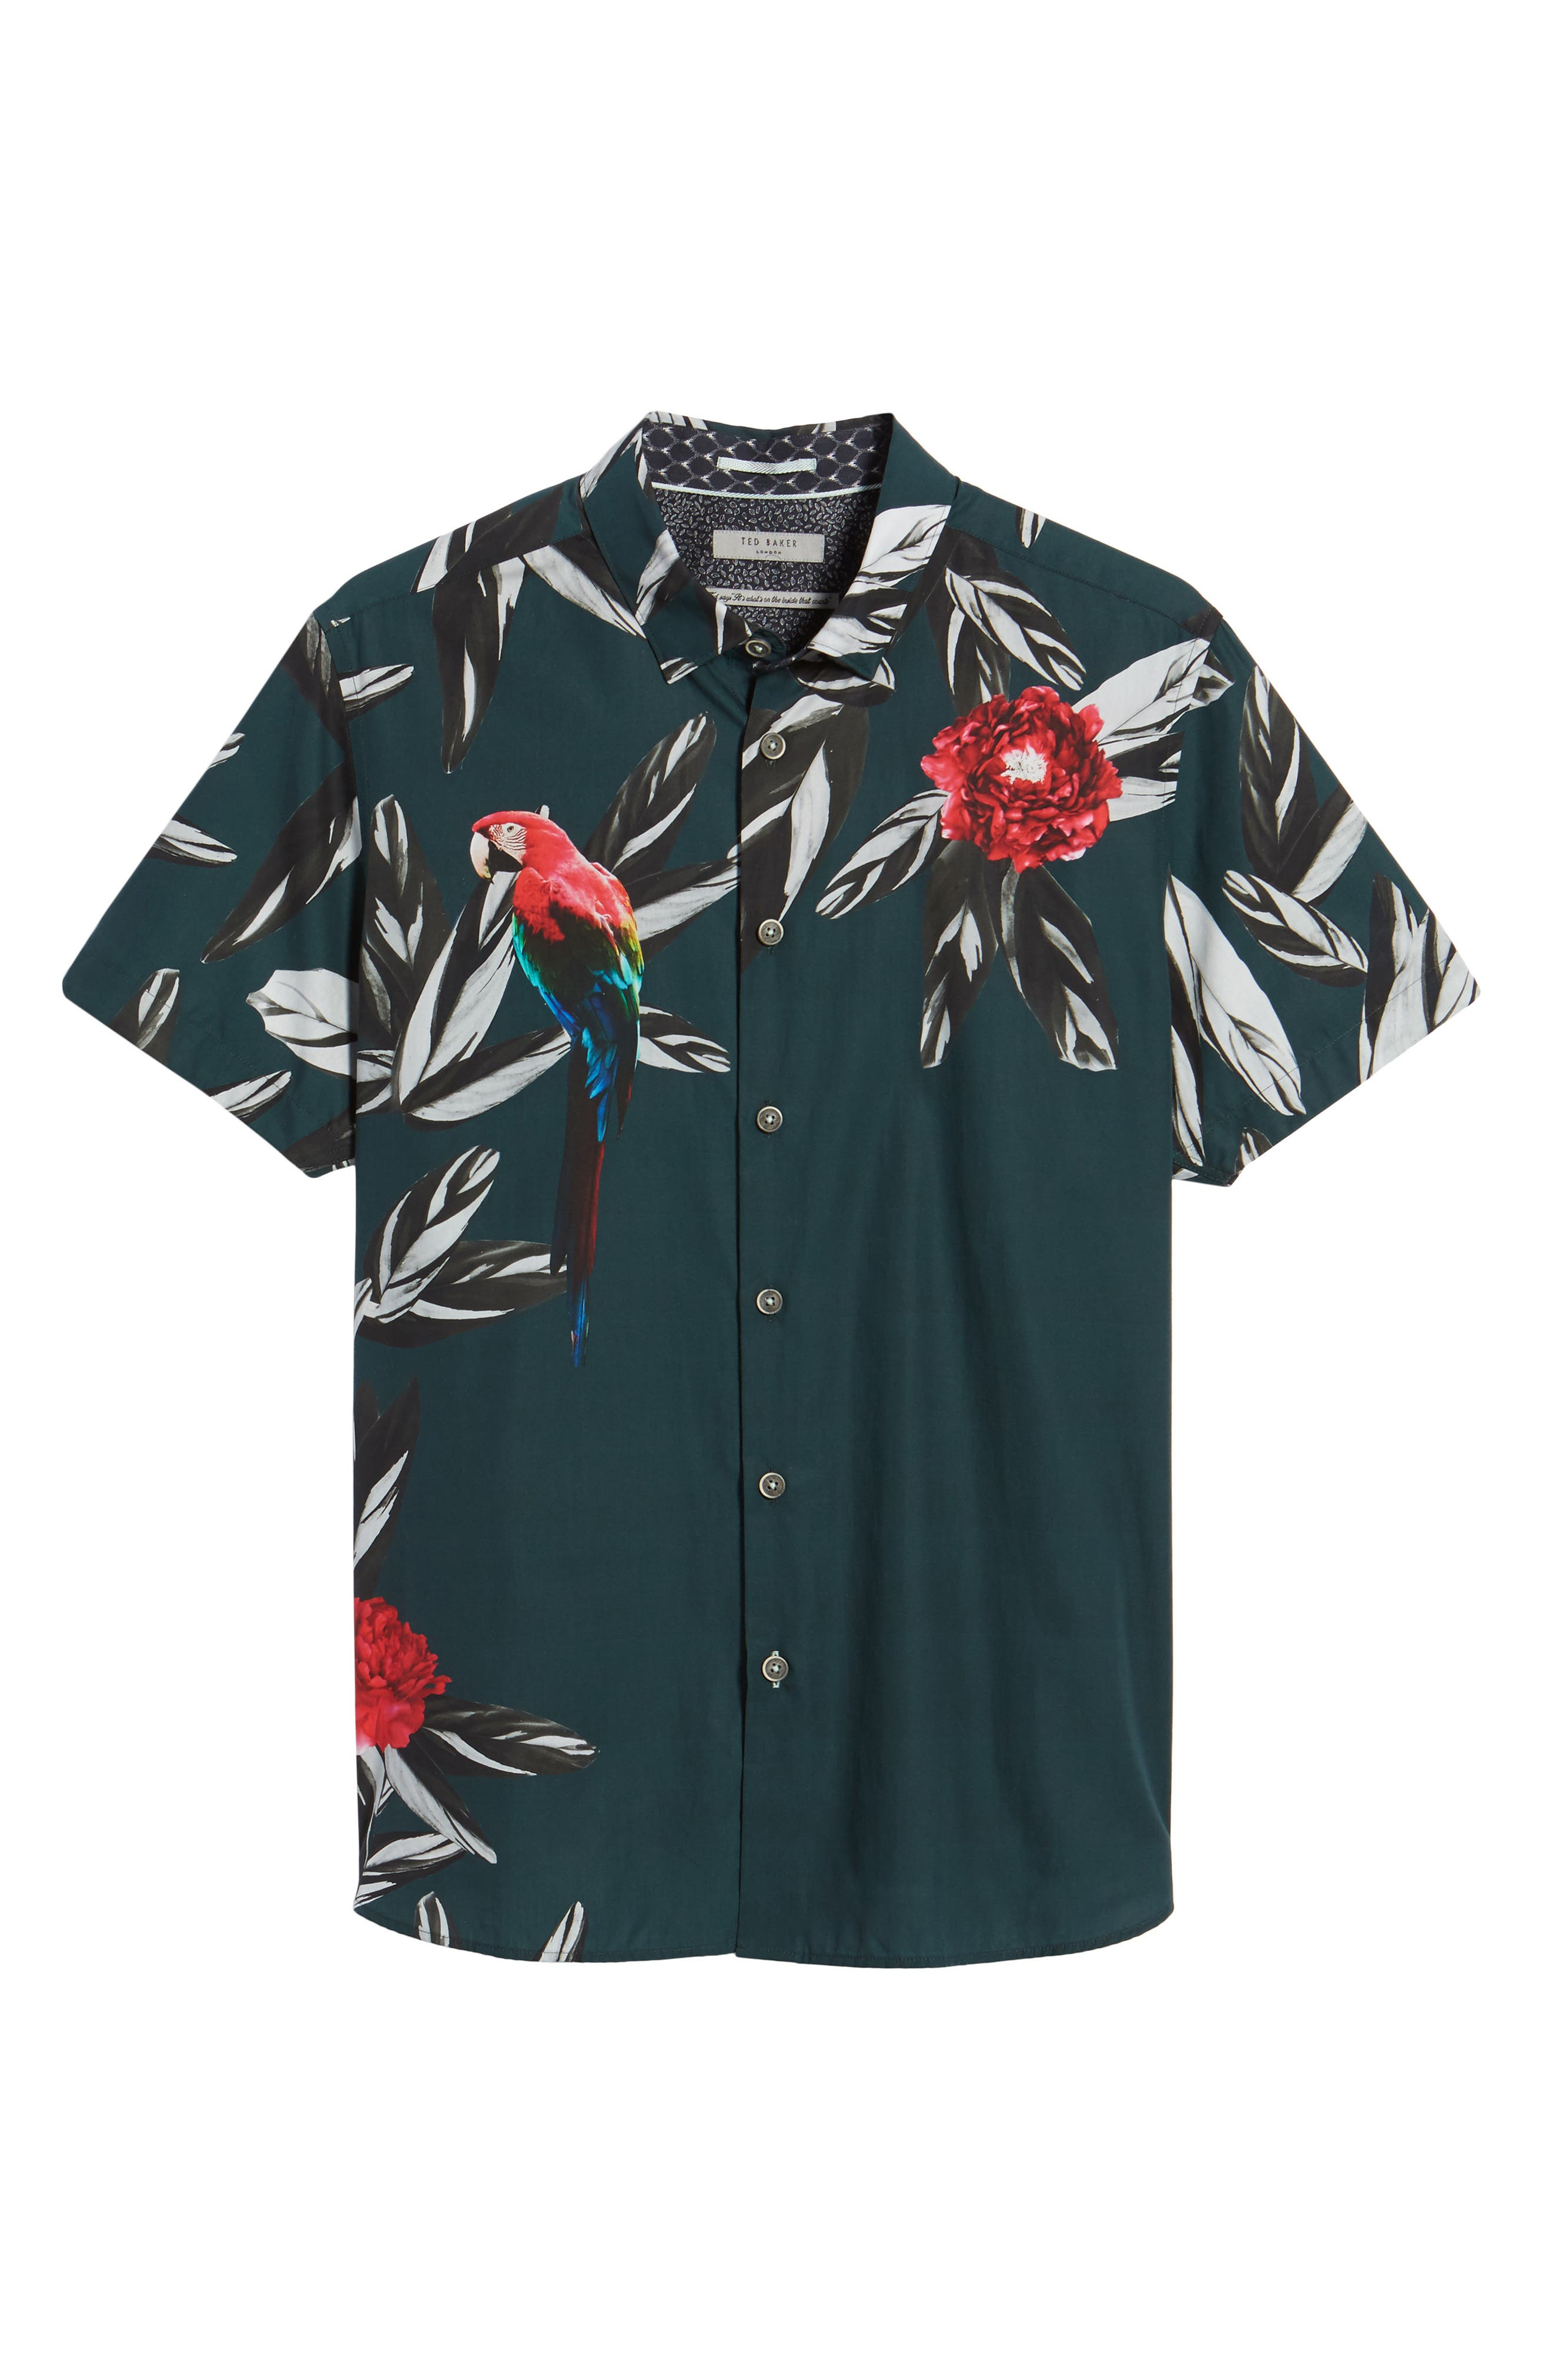 Parrot Print Short Sleeve Sport Shirt,                             Alternate thumbnail 6, color,                             Dark Green